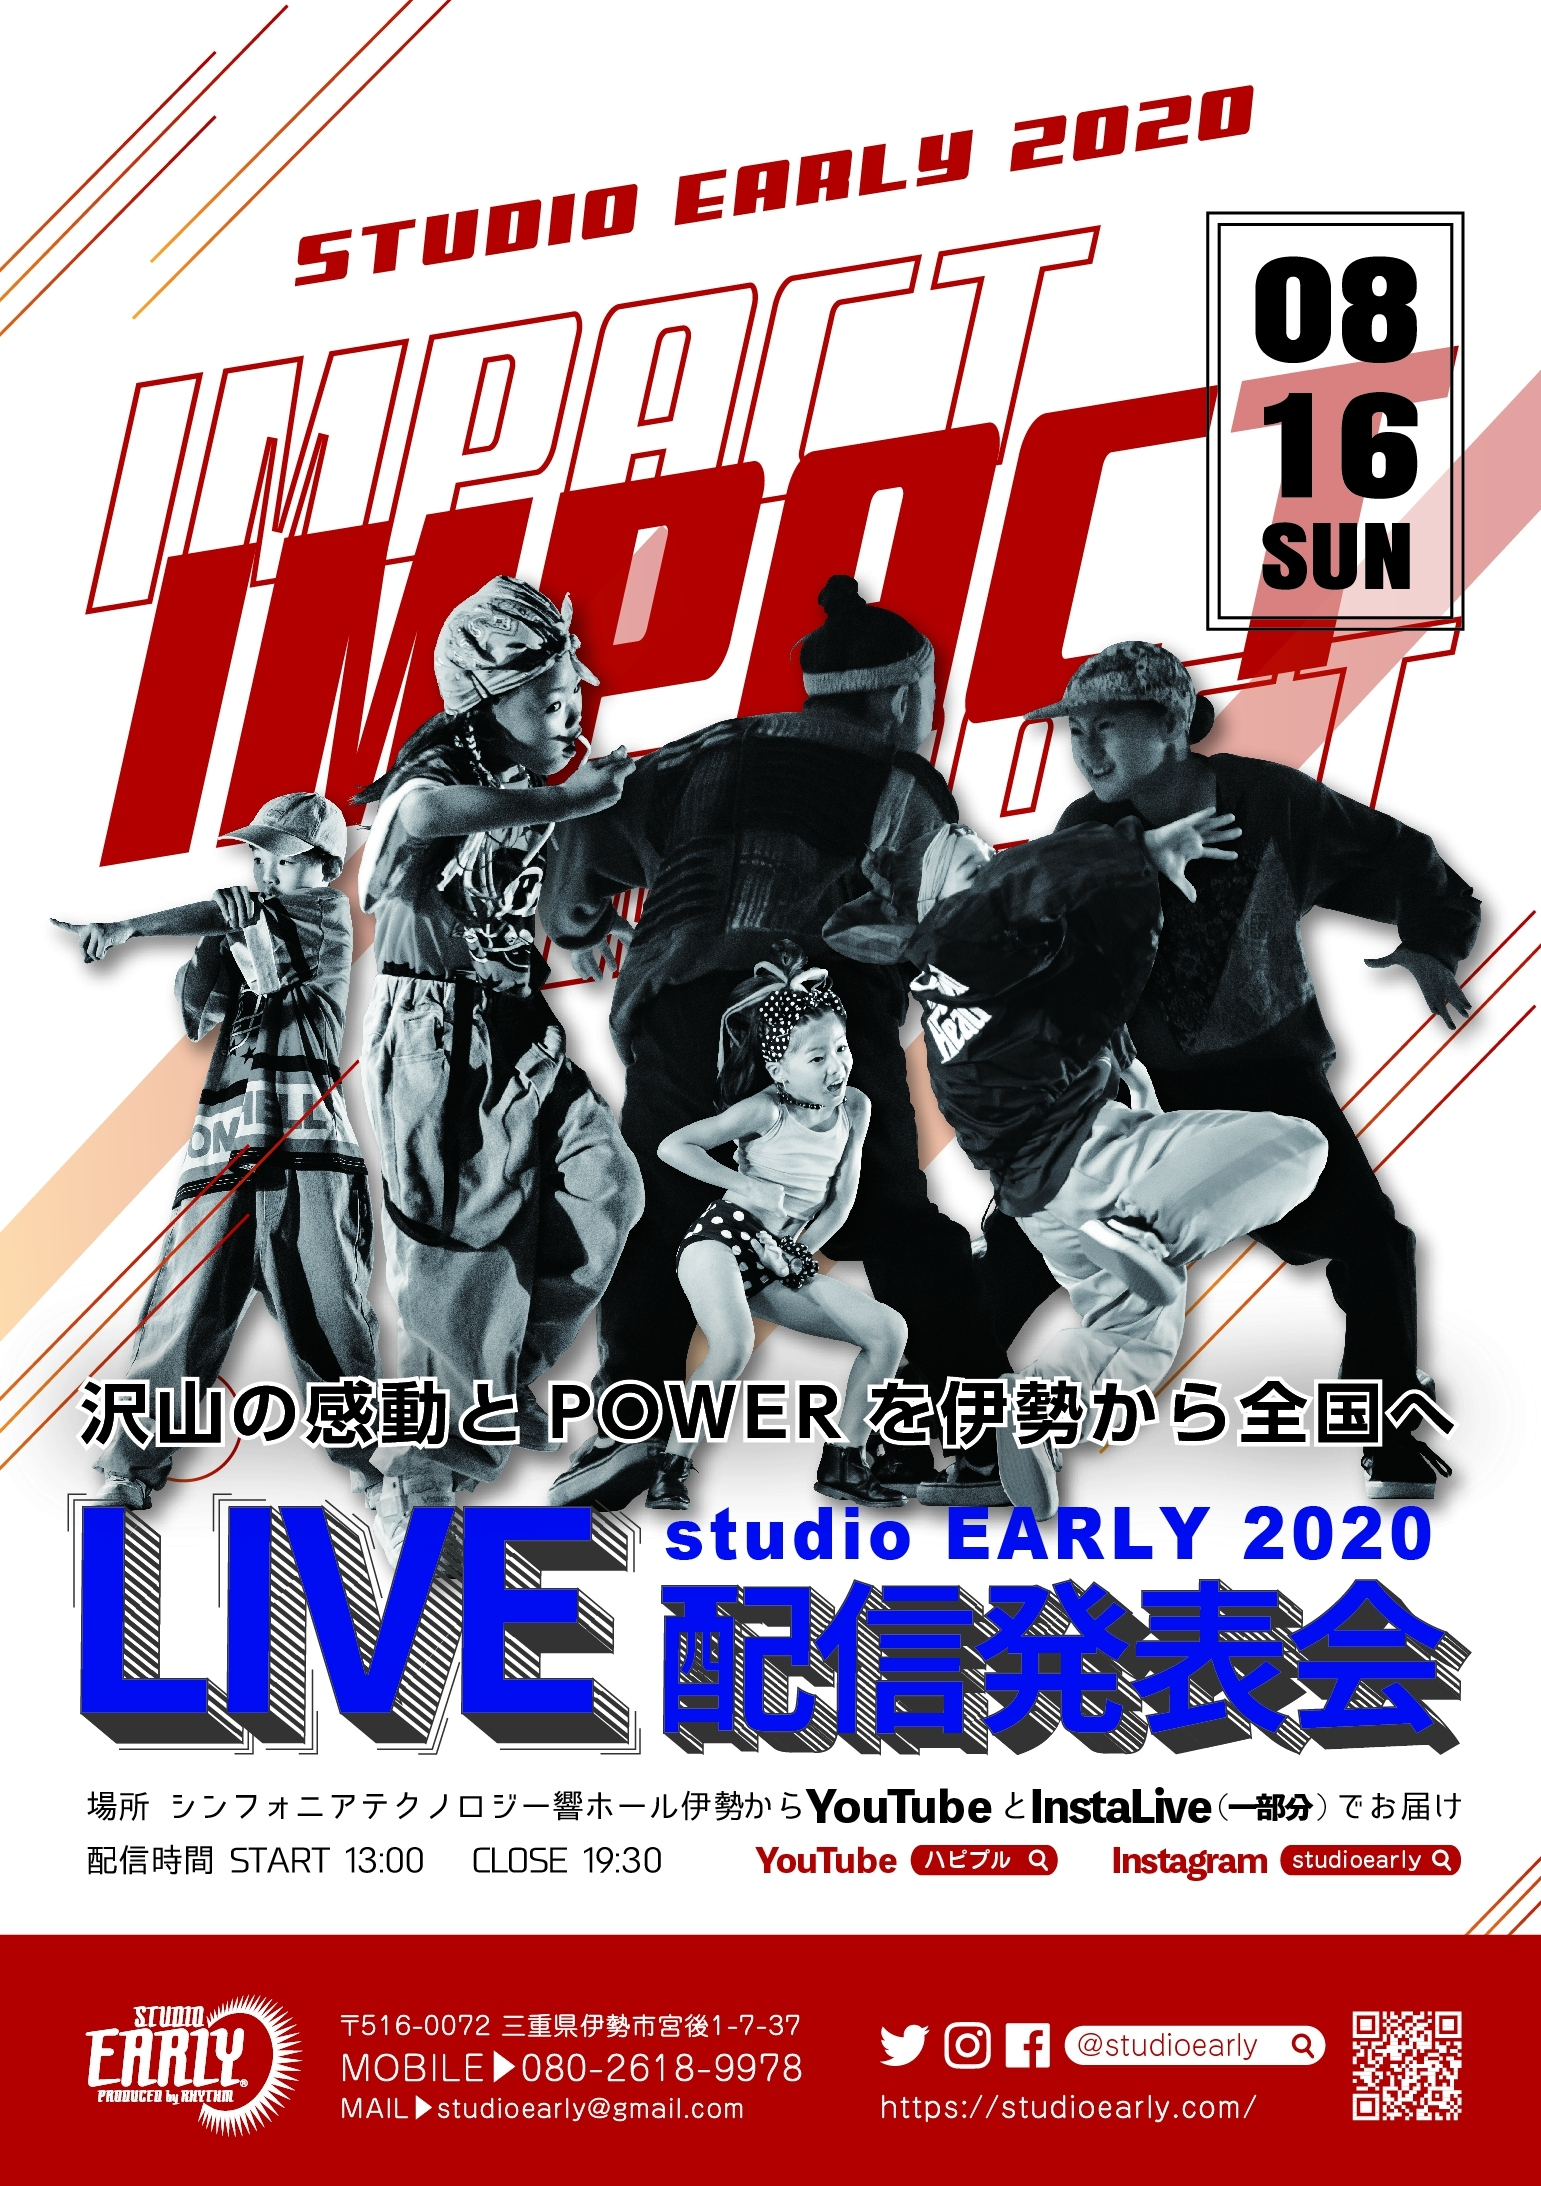 studioEARLY 2020 LIVE配信発表会〜8月16日(日)〜